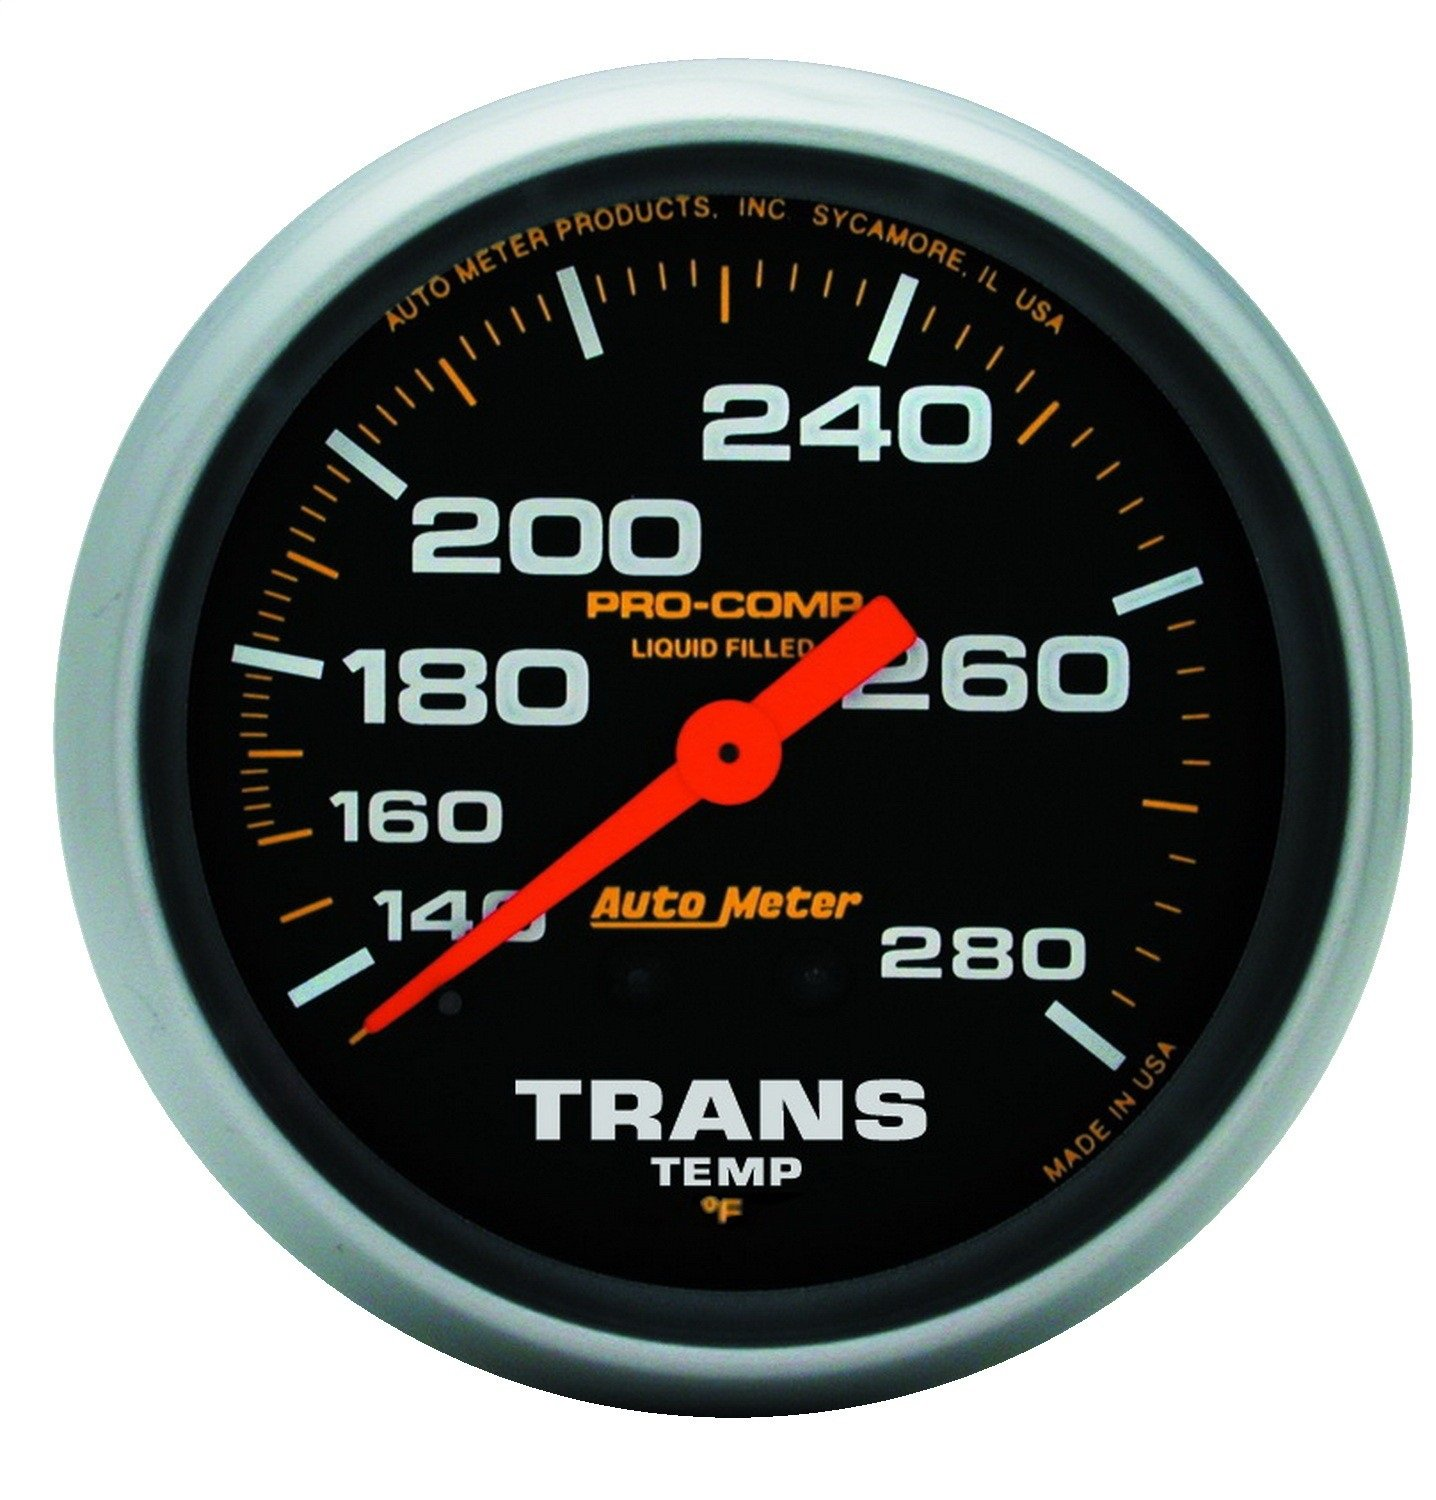 Auto Meter 5451 Pro-Comp Liquid-Filled Mechanical Transmission Temp Gauge by AUTO METER